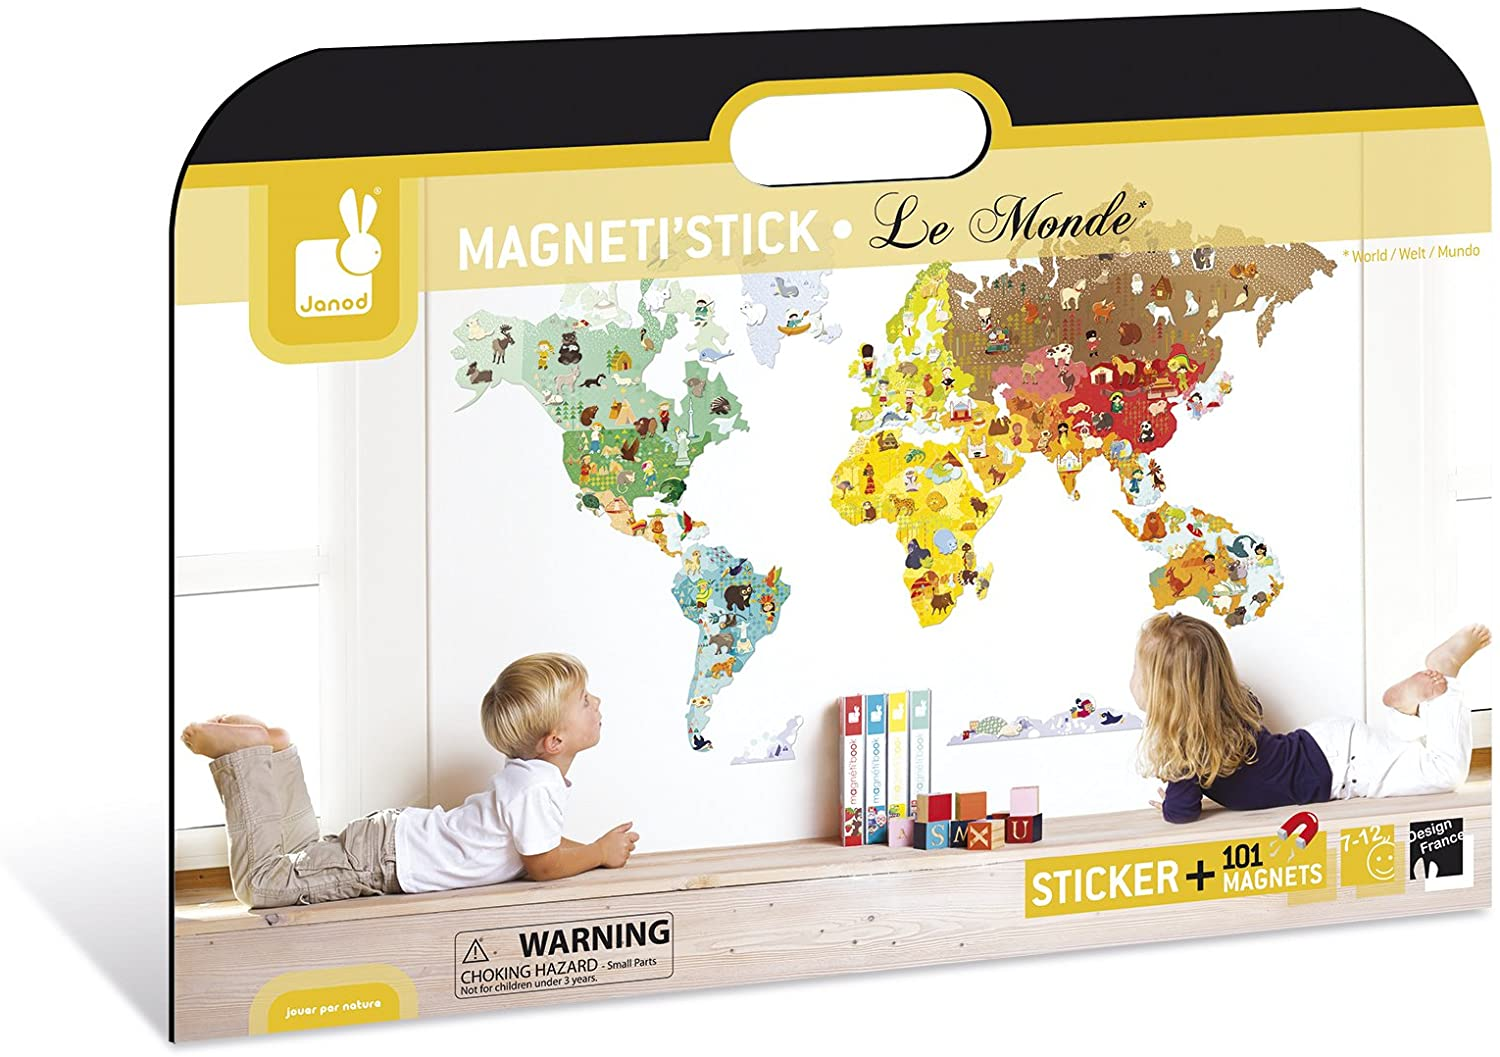 Magnetic Stick Mundo